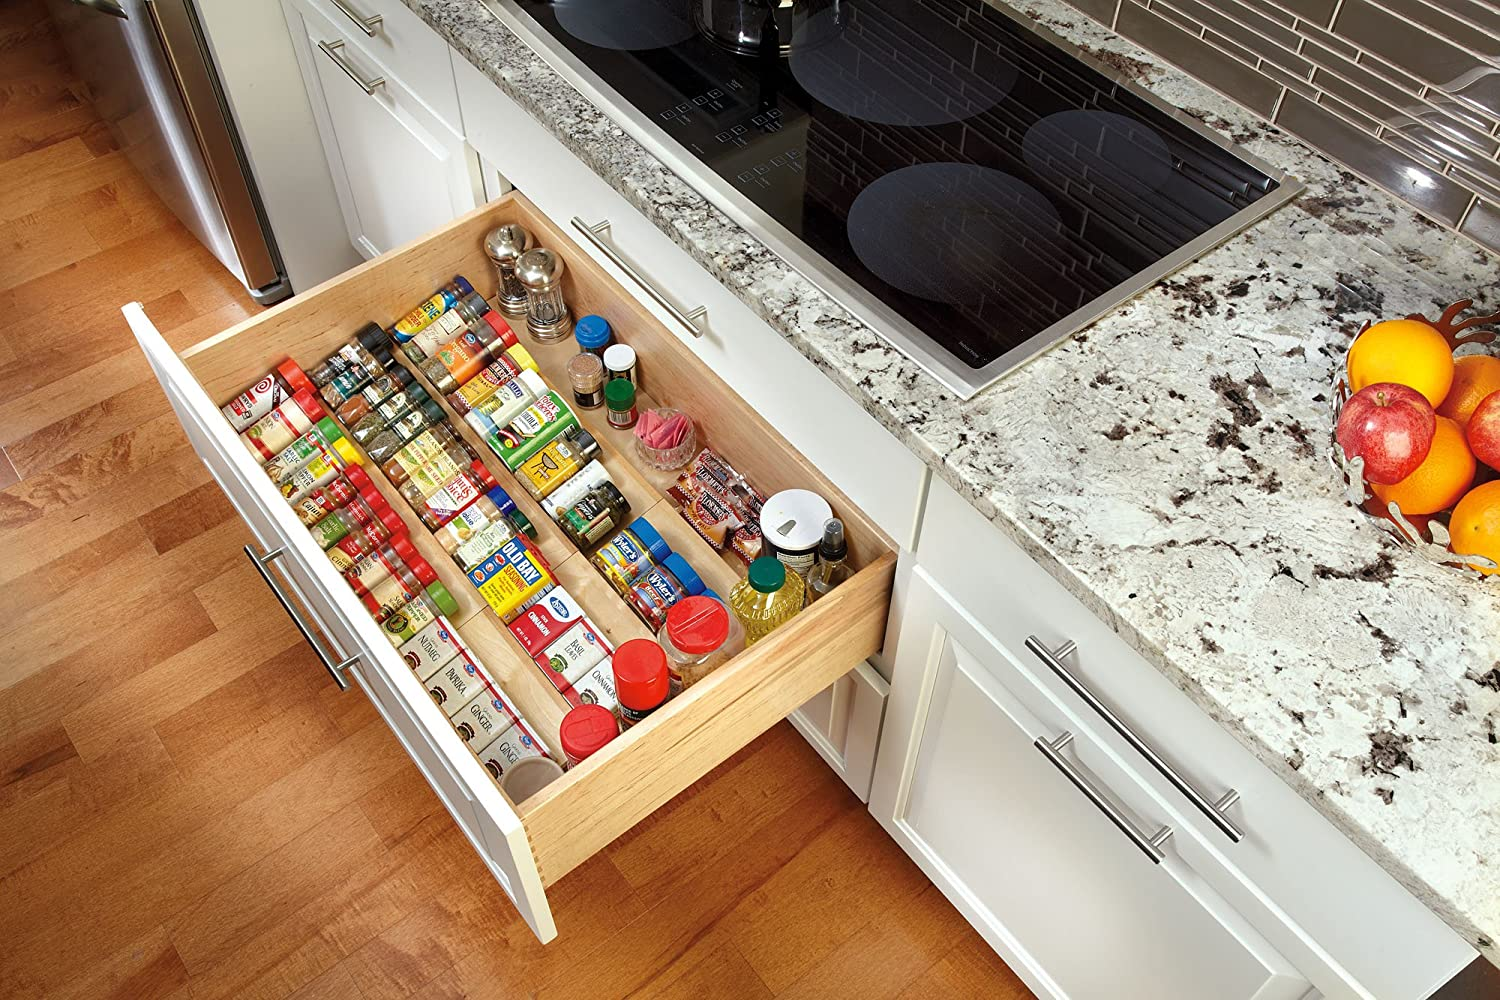 Kitchen drawer inserts for spices - Amazon Com Rev A Shelf 4sdi 24 X Large Wood Spice Drawer Insert